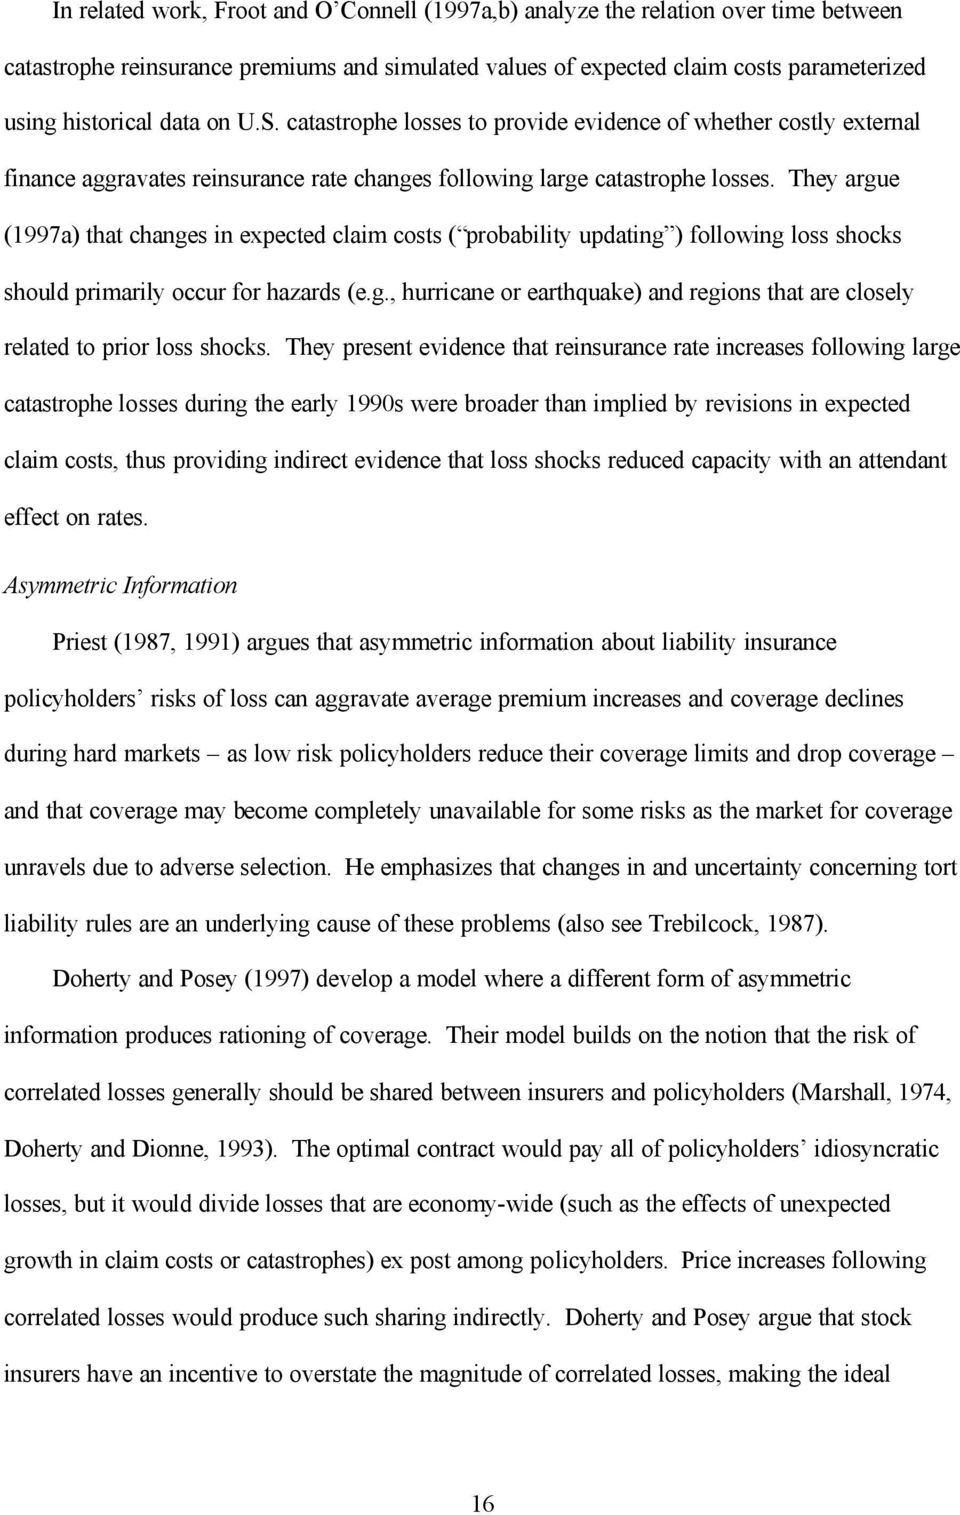 They argue (1997a) that changes in expected claim costs ( probability updating ) following loss shocks should primarily occur for hazards (e.g., hurricane or earthquake) and regions that are closely related to prior loss shocks.